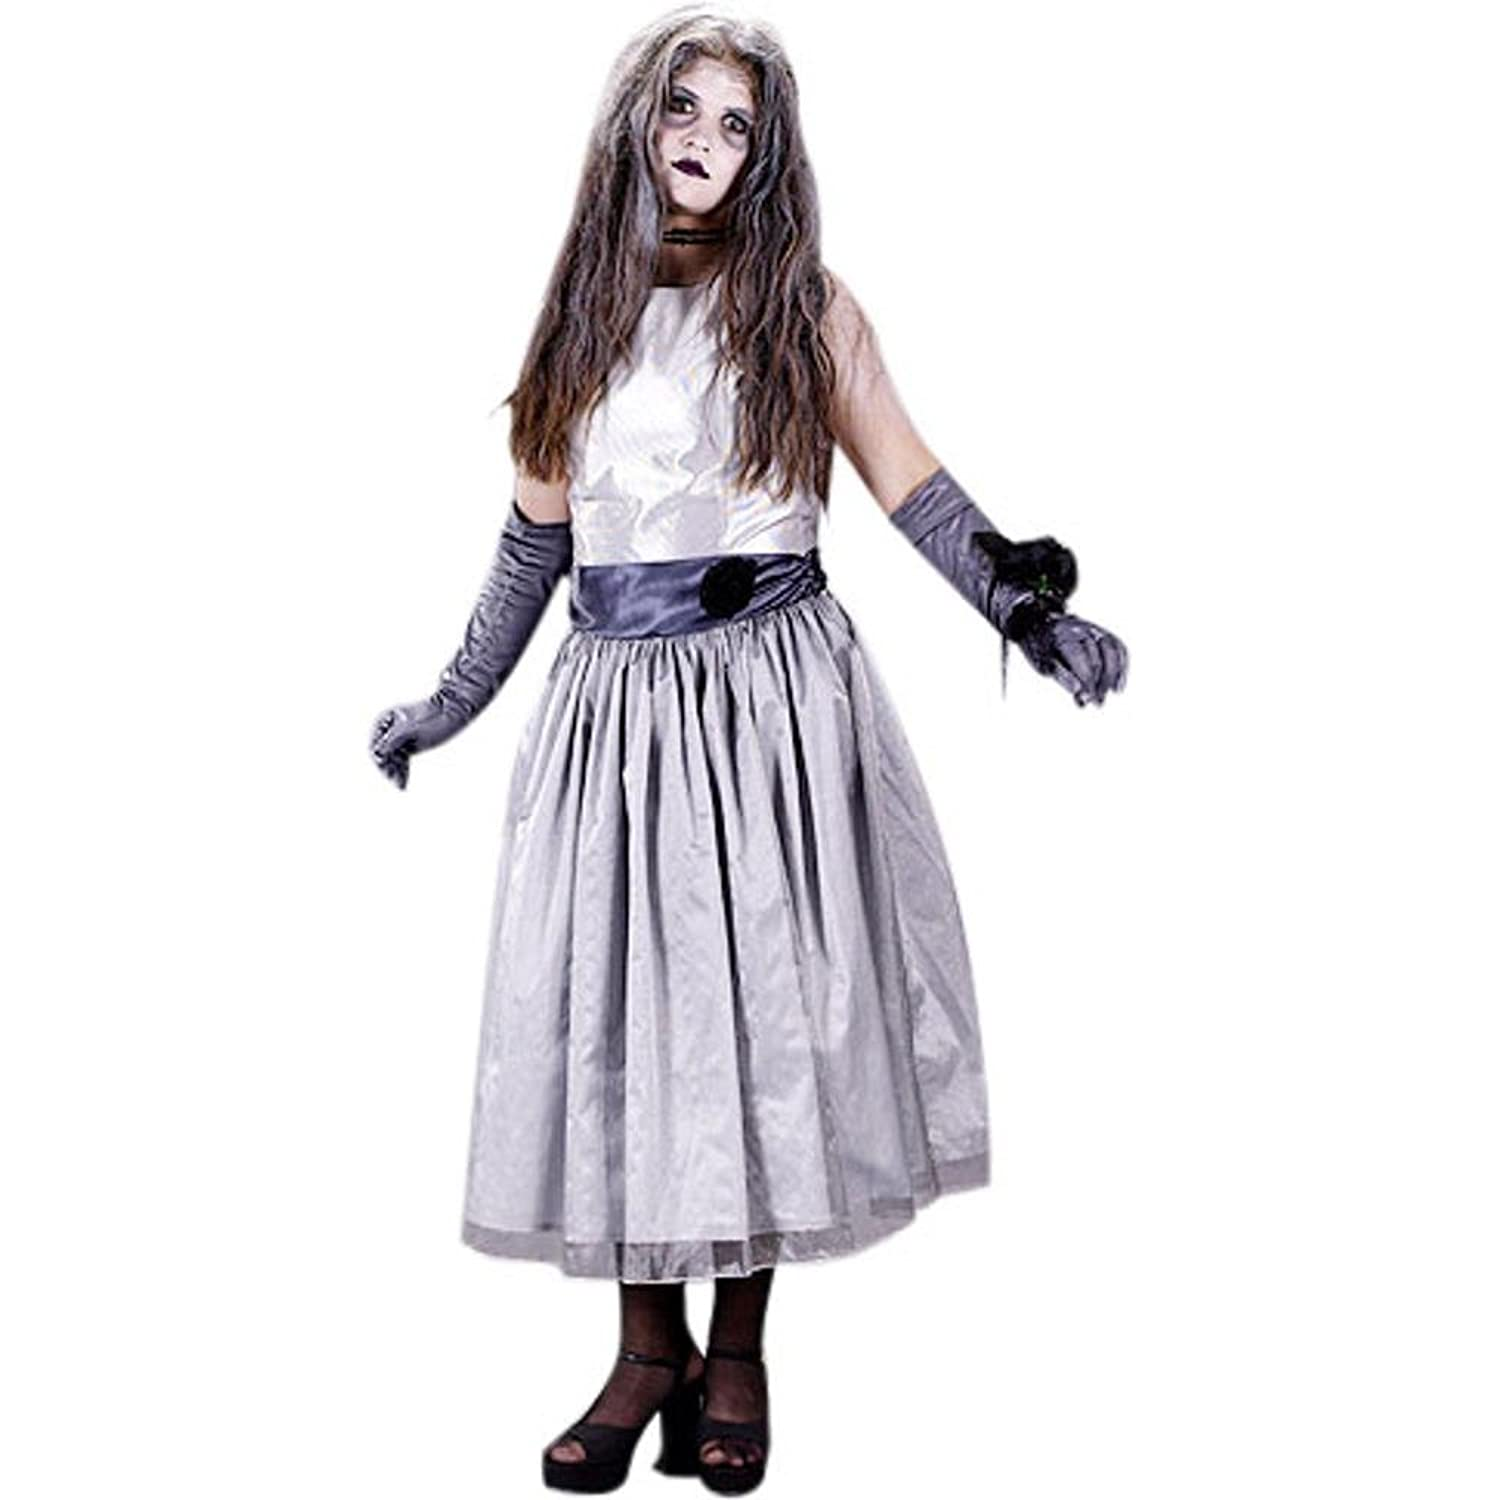 sc 1 st  Amazon.com & Amazon.com: Girlu0027s Teen Prom Zombie Halloween Costume (Sz: 9): Clothing